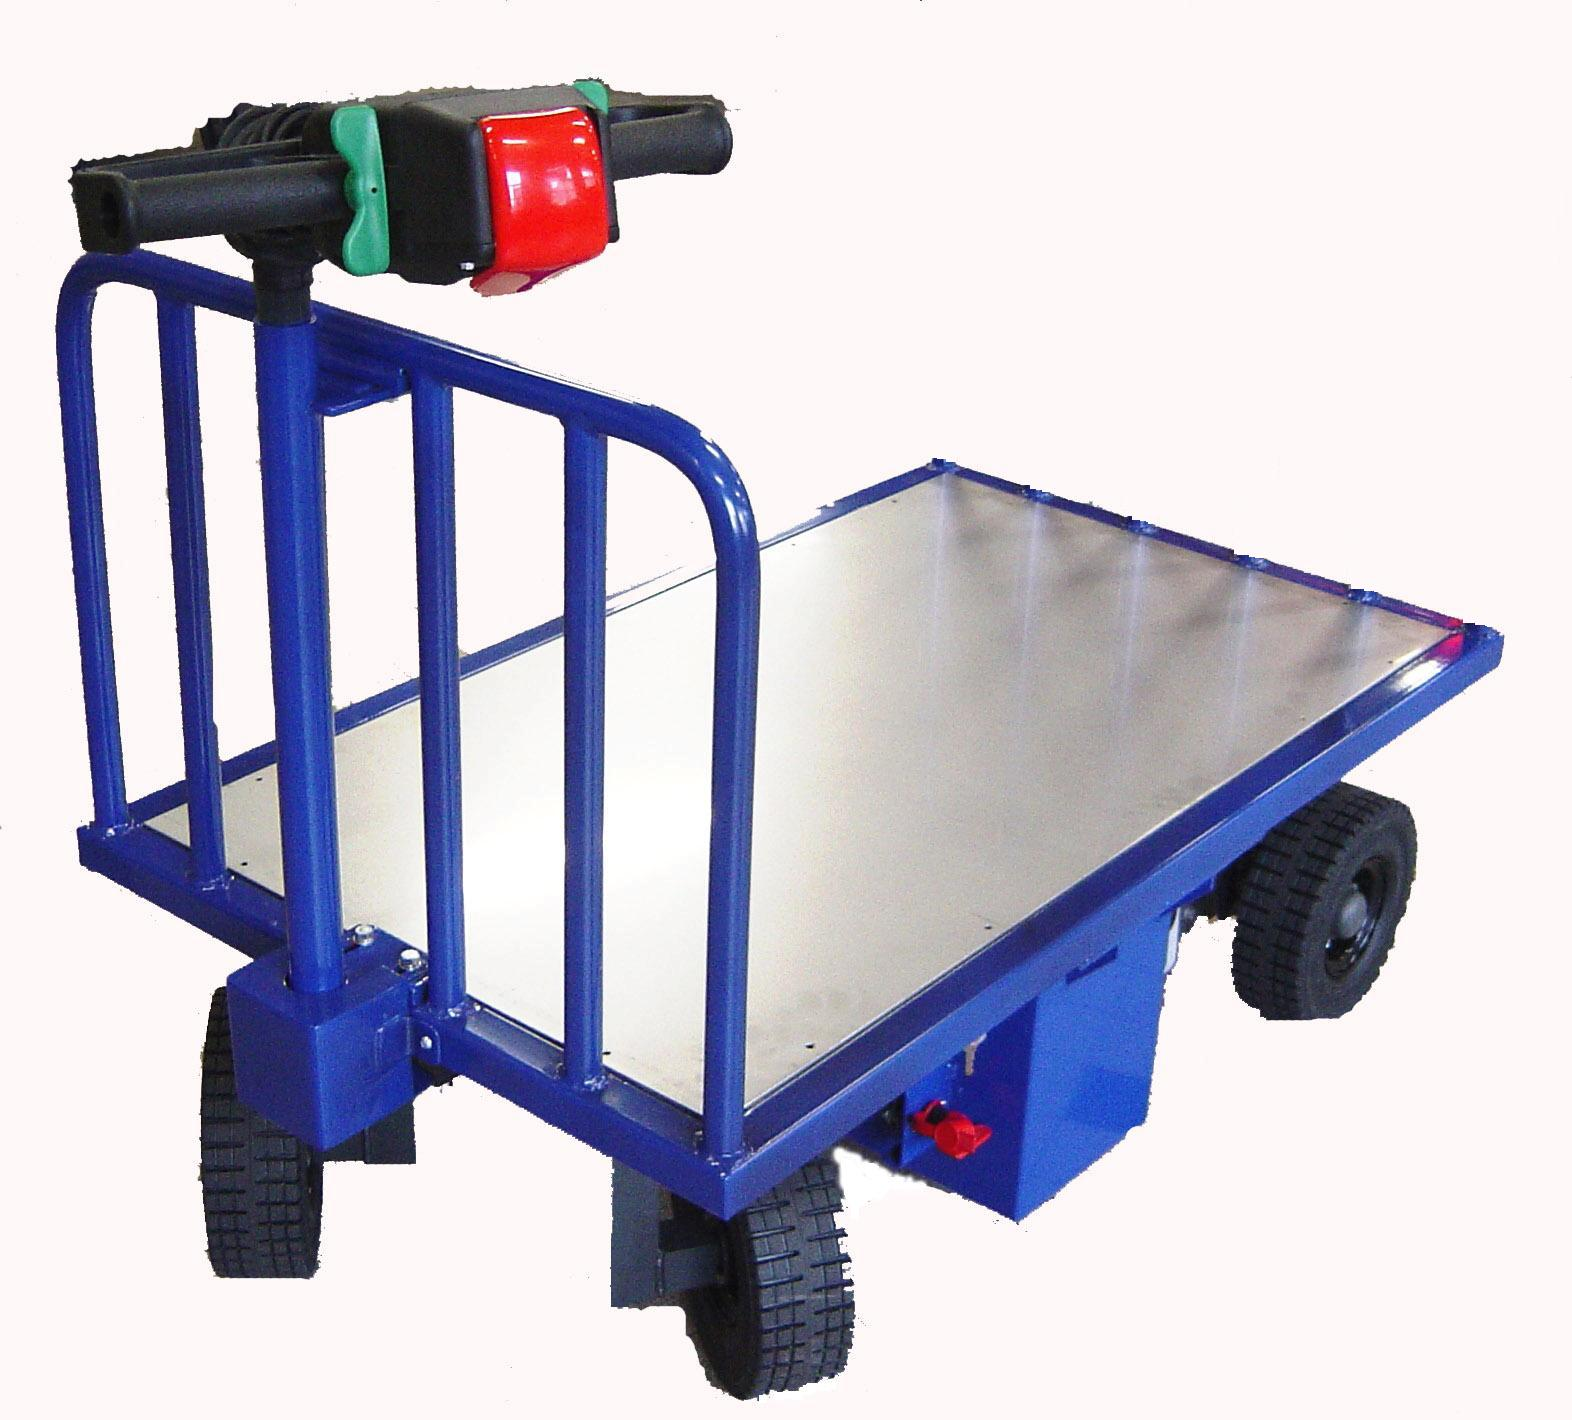 LFP battery industrial trolley